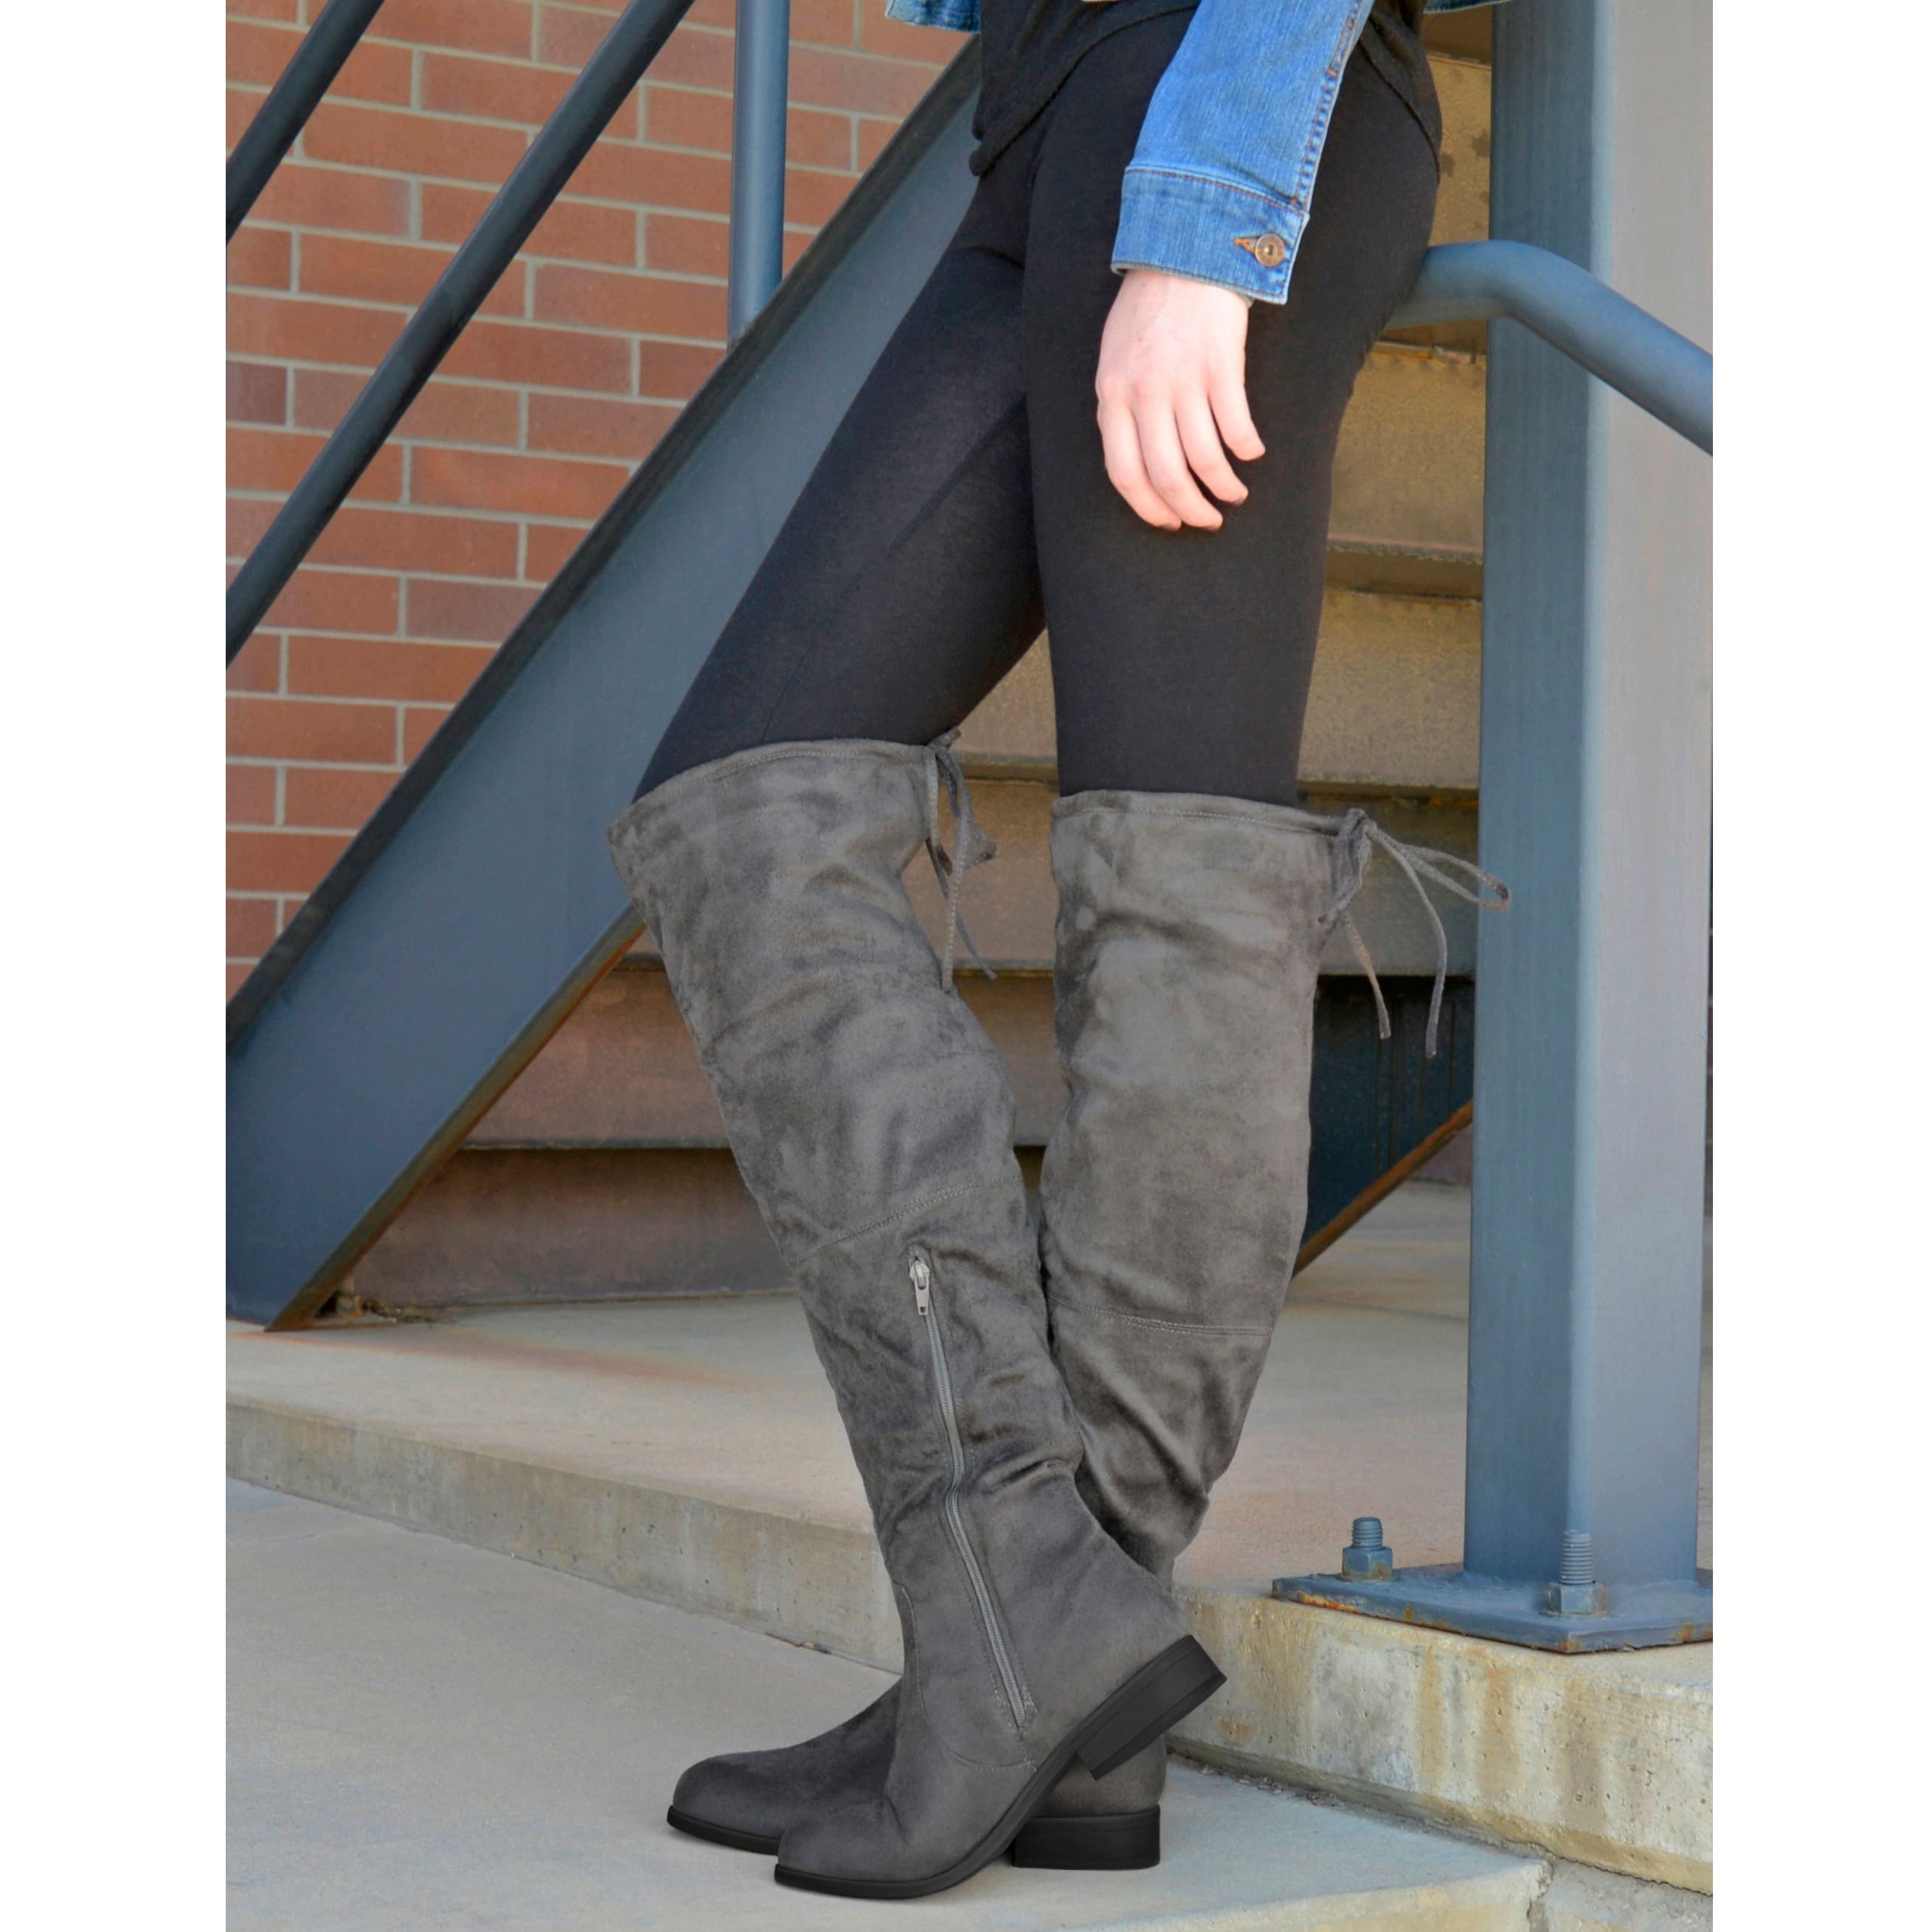 Journee Collection Mount ... Women's Over-the-Knee Boots 2014 new cheap online ebay cheap price discount free shipping TbuBtIwGY